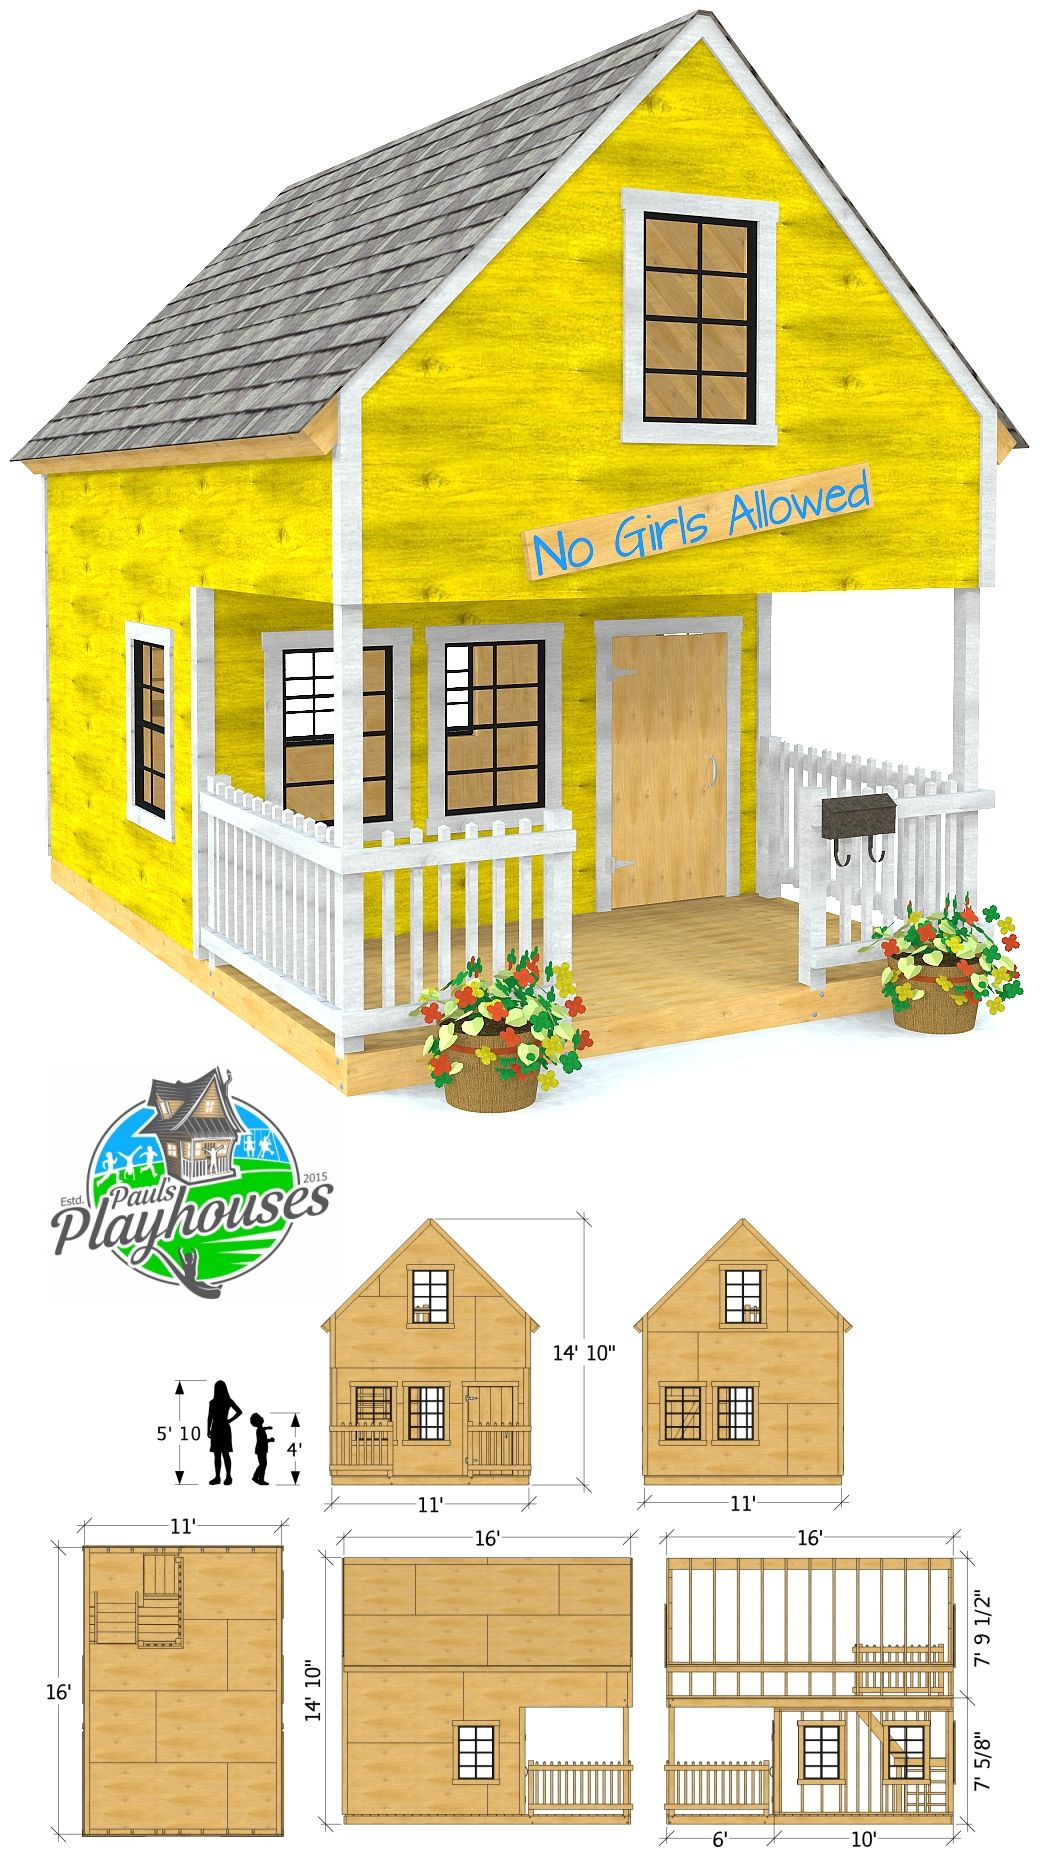 11x16 Two Story Yellow Playhouse Plan For Kids Play Houses Playhouse Plan Shed Homes